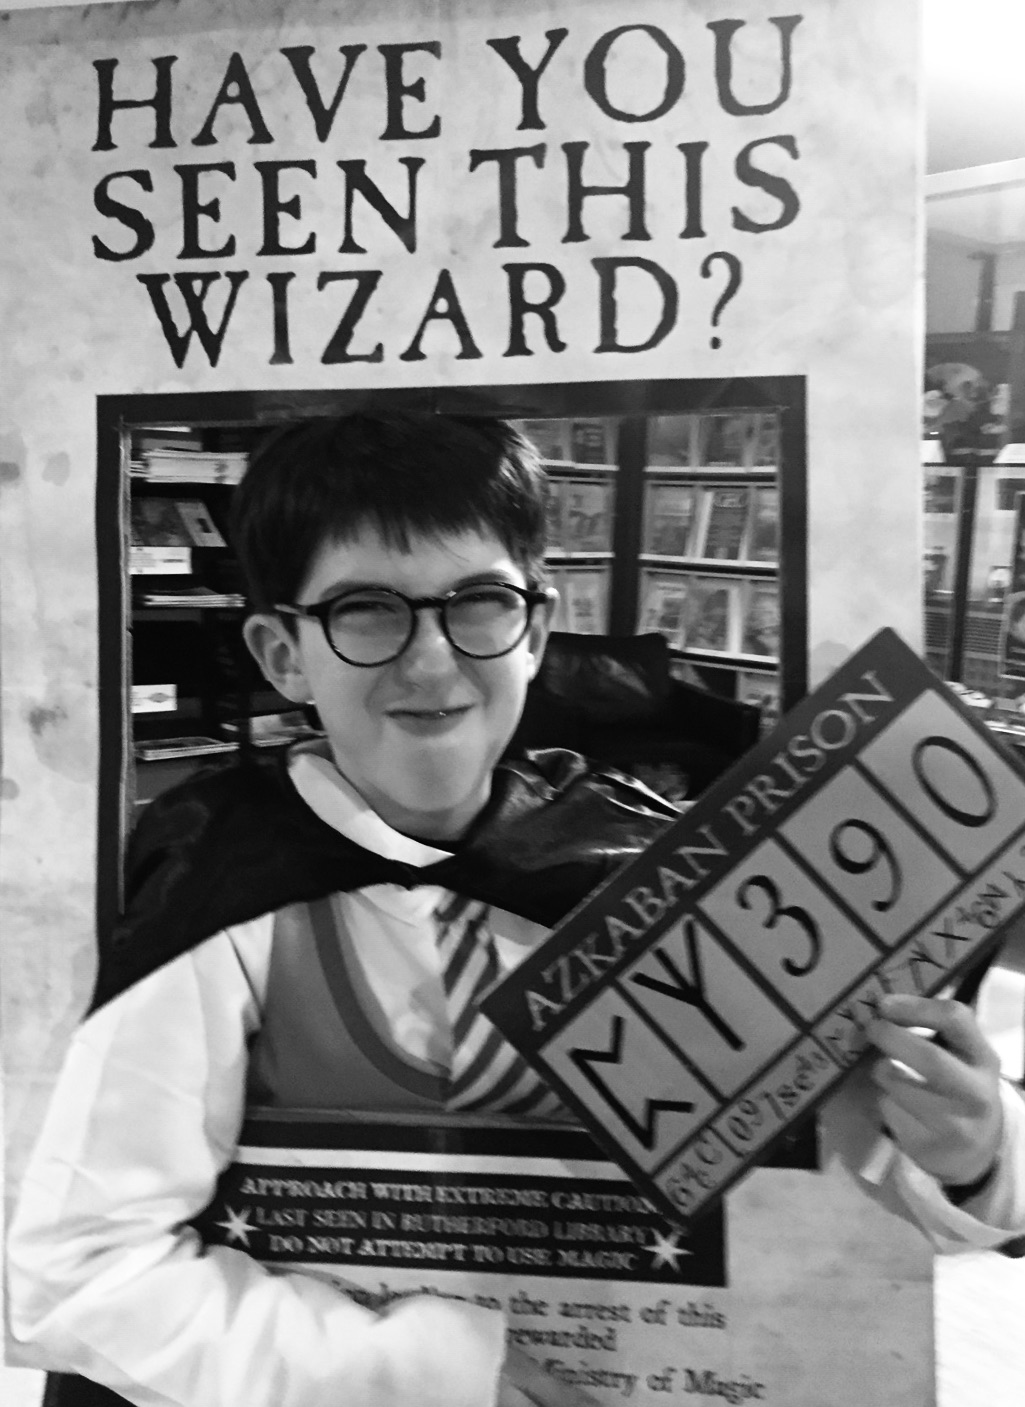 Have you seen this wizard ? Murder Party Harry Potter - Médiathèque de Hendaye